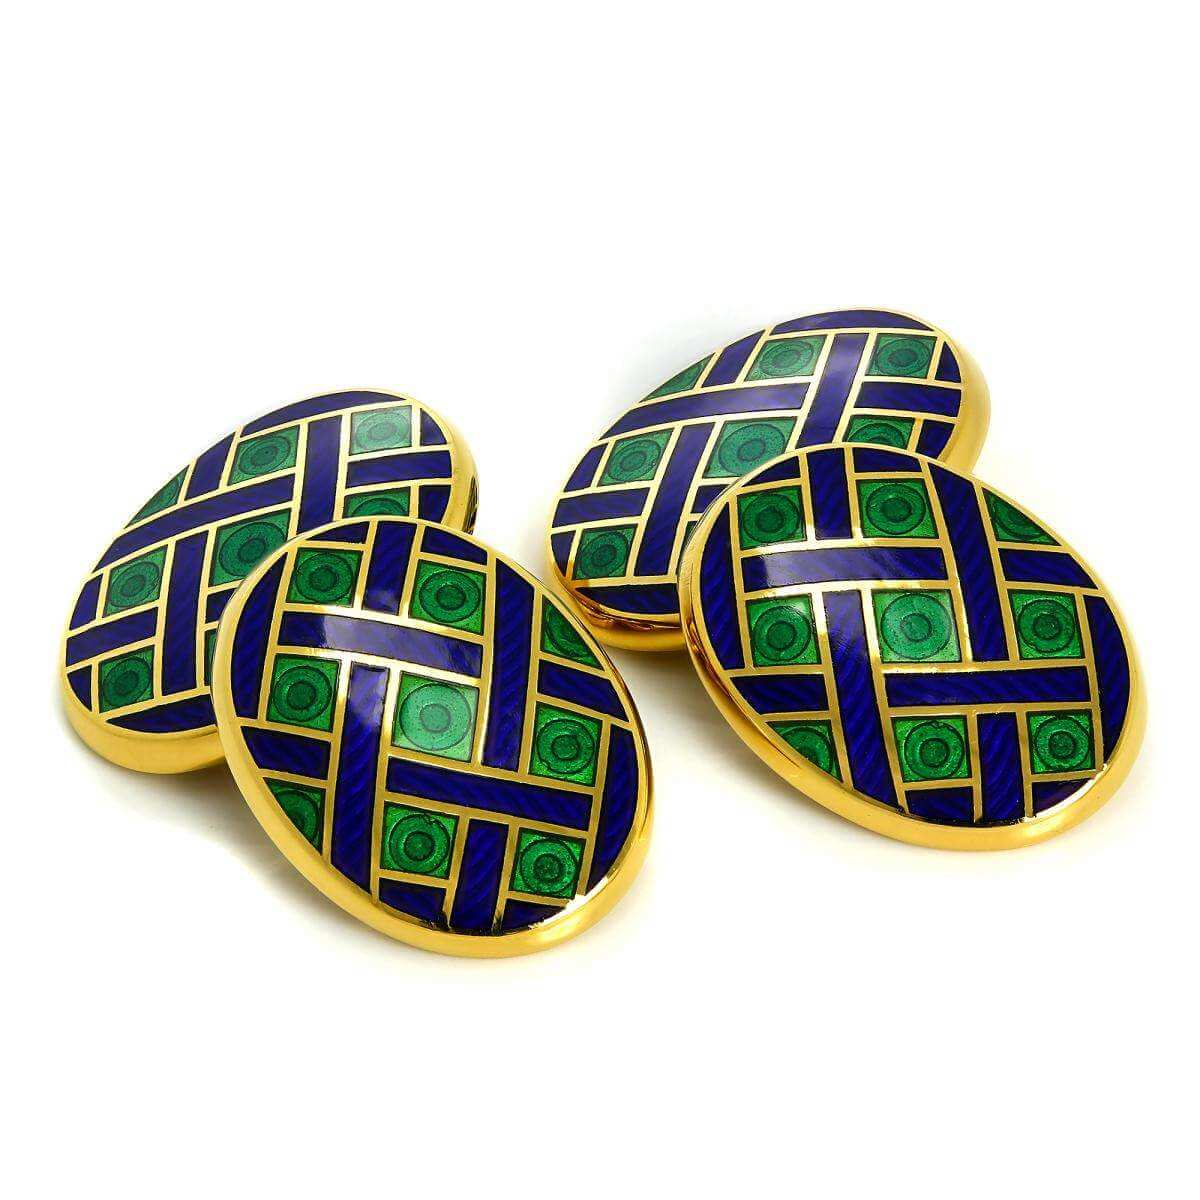 9ct Gold Blue & Green Enamel Weave Pattern Double Sided Chain Oval Cufflinks